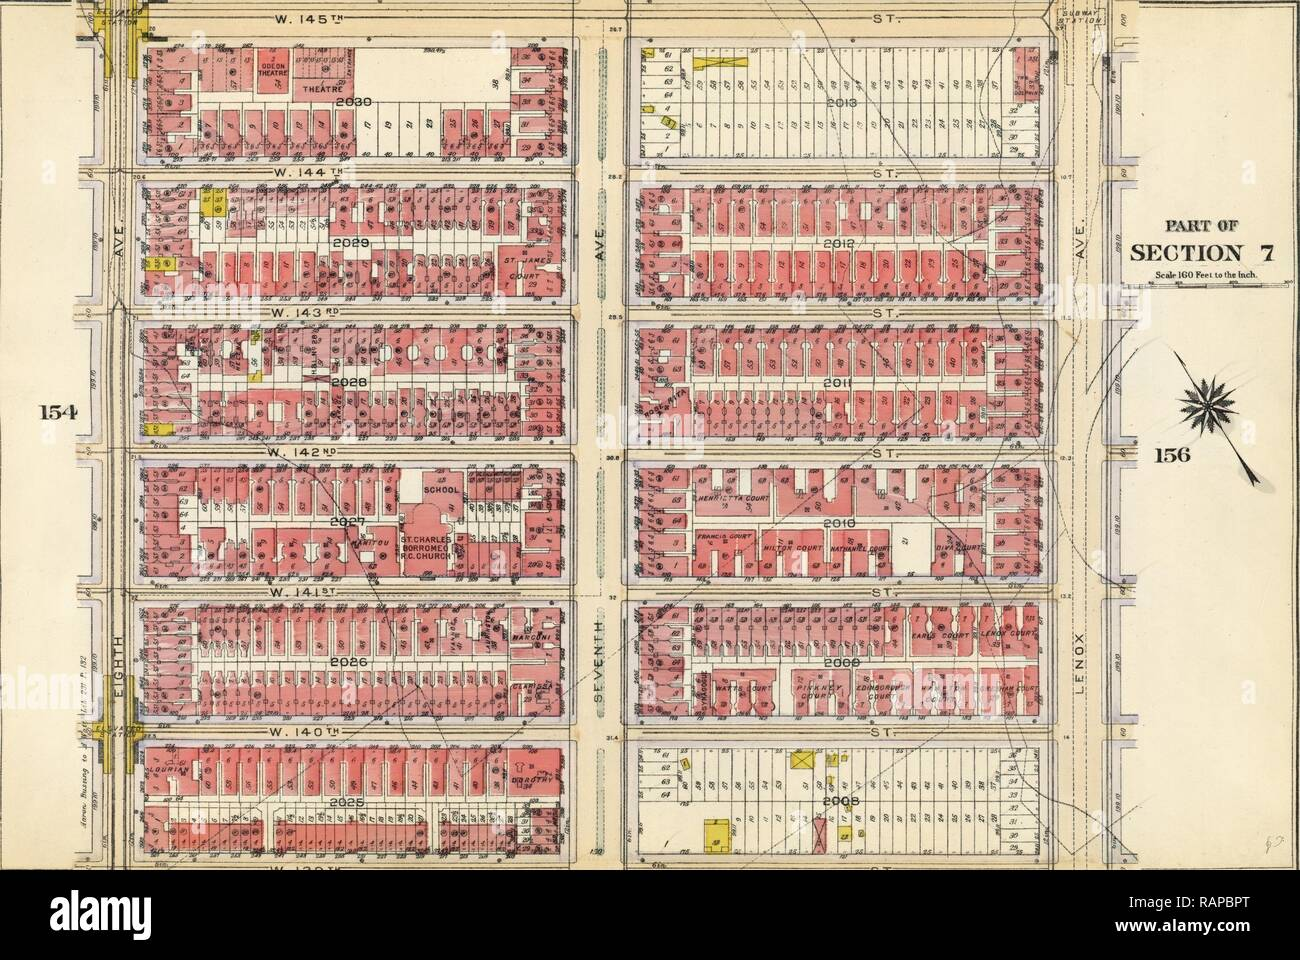 Plate 155: Bounded by W. 145th Street, Lenox Avenue, W. 139th Street and Eighth Avenue, New York, USA. Reimagined - Stock Image